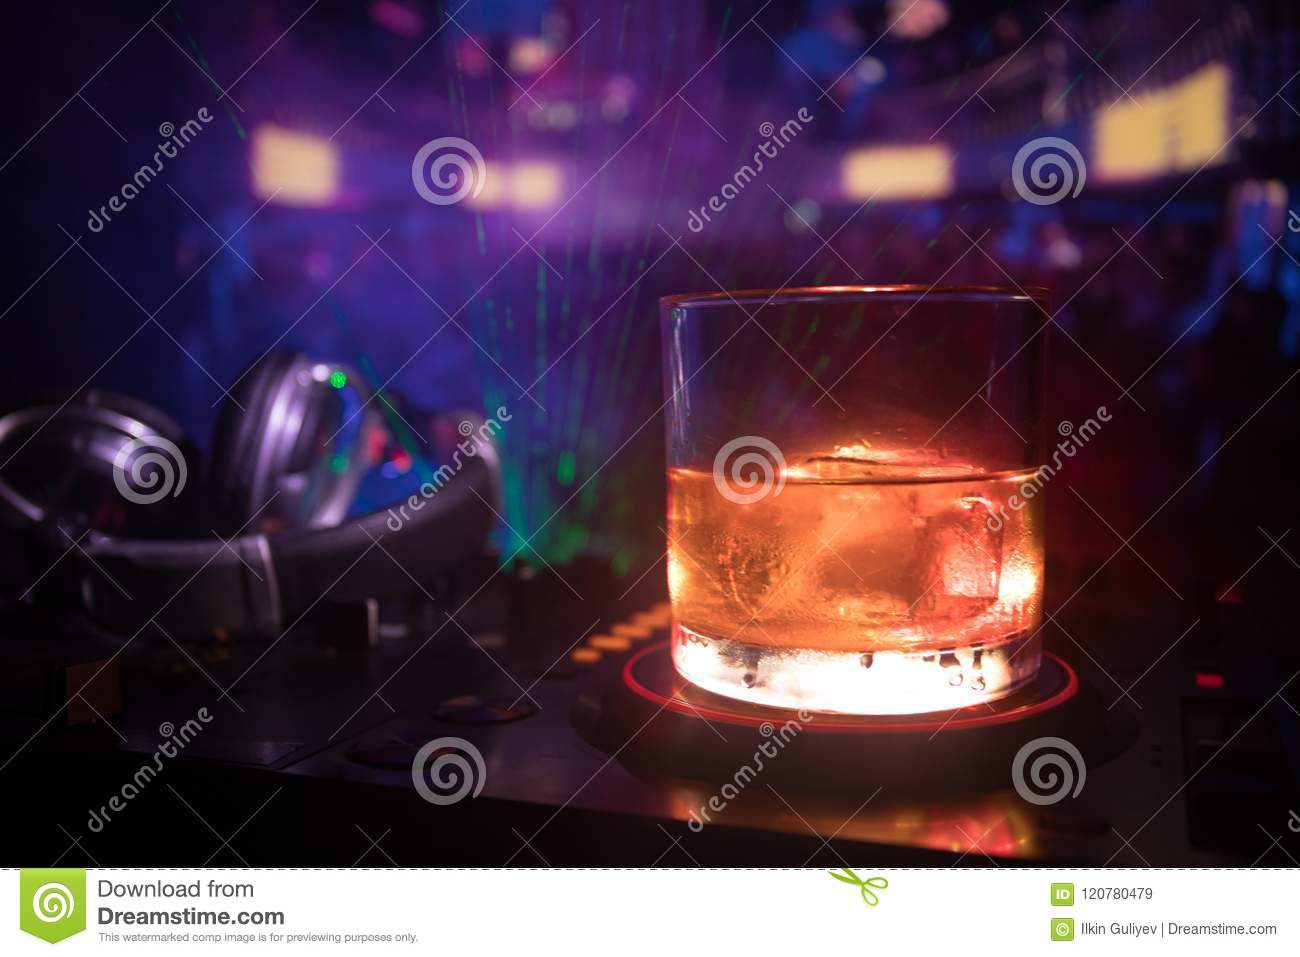 Glass with whisky with ice cube inside on dj controller at nightclub. Dj Console with club drink at music party in nightclub with